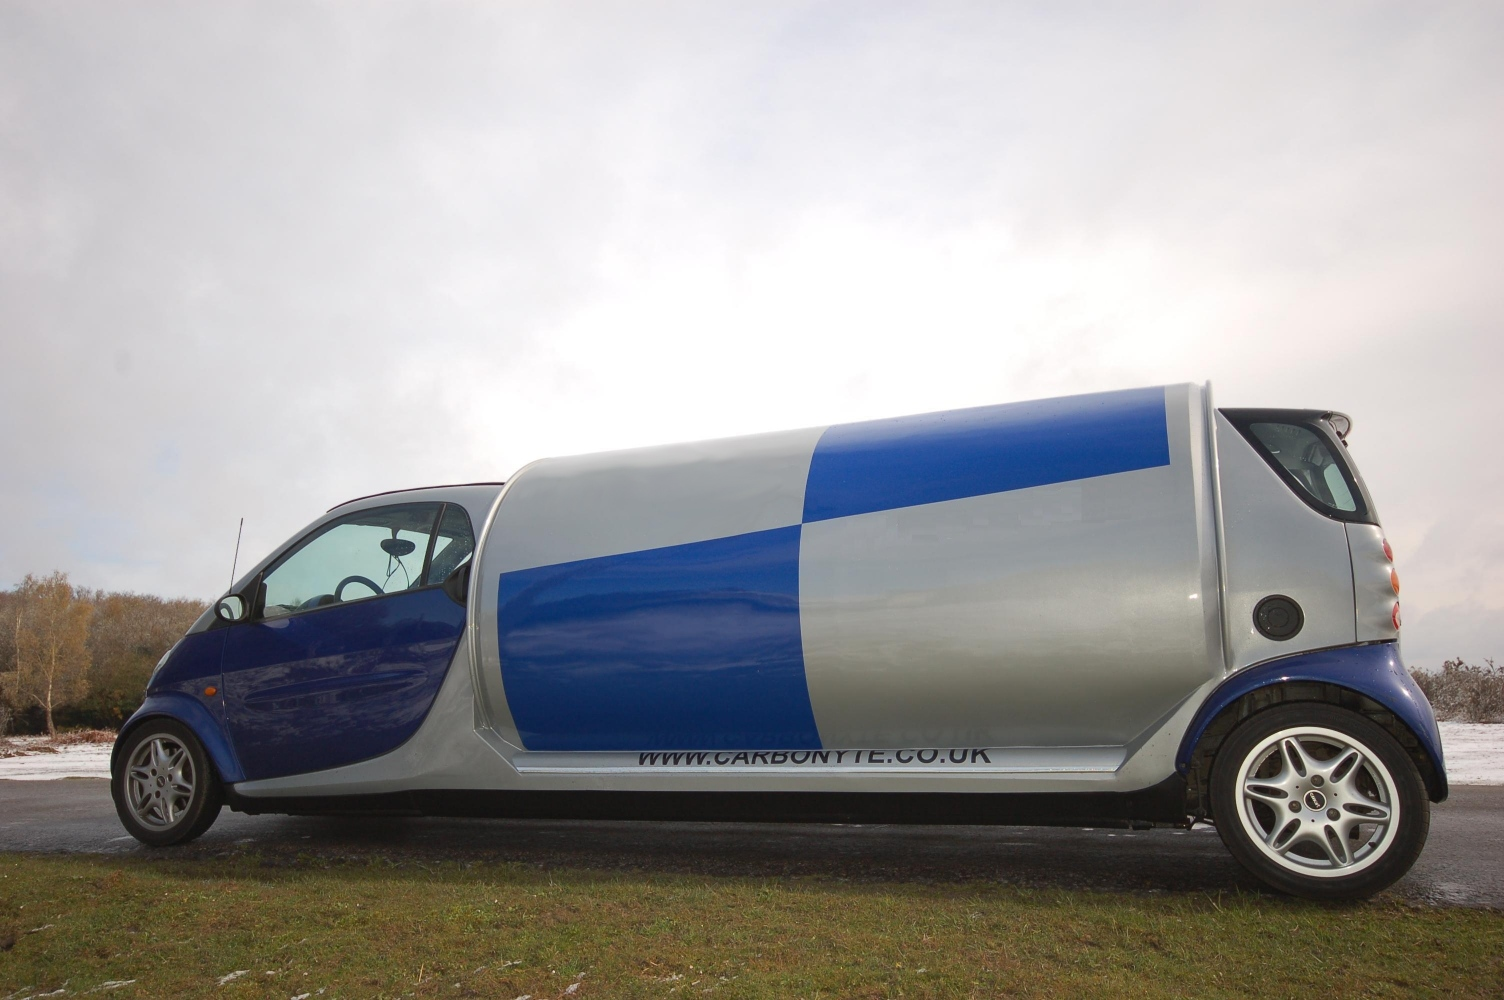 World U0026 39 S Only Stretch Smart Car Unveiled By Carbonyte Uk